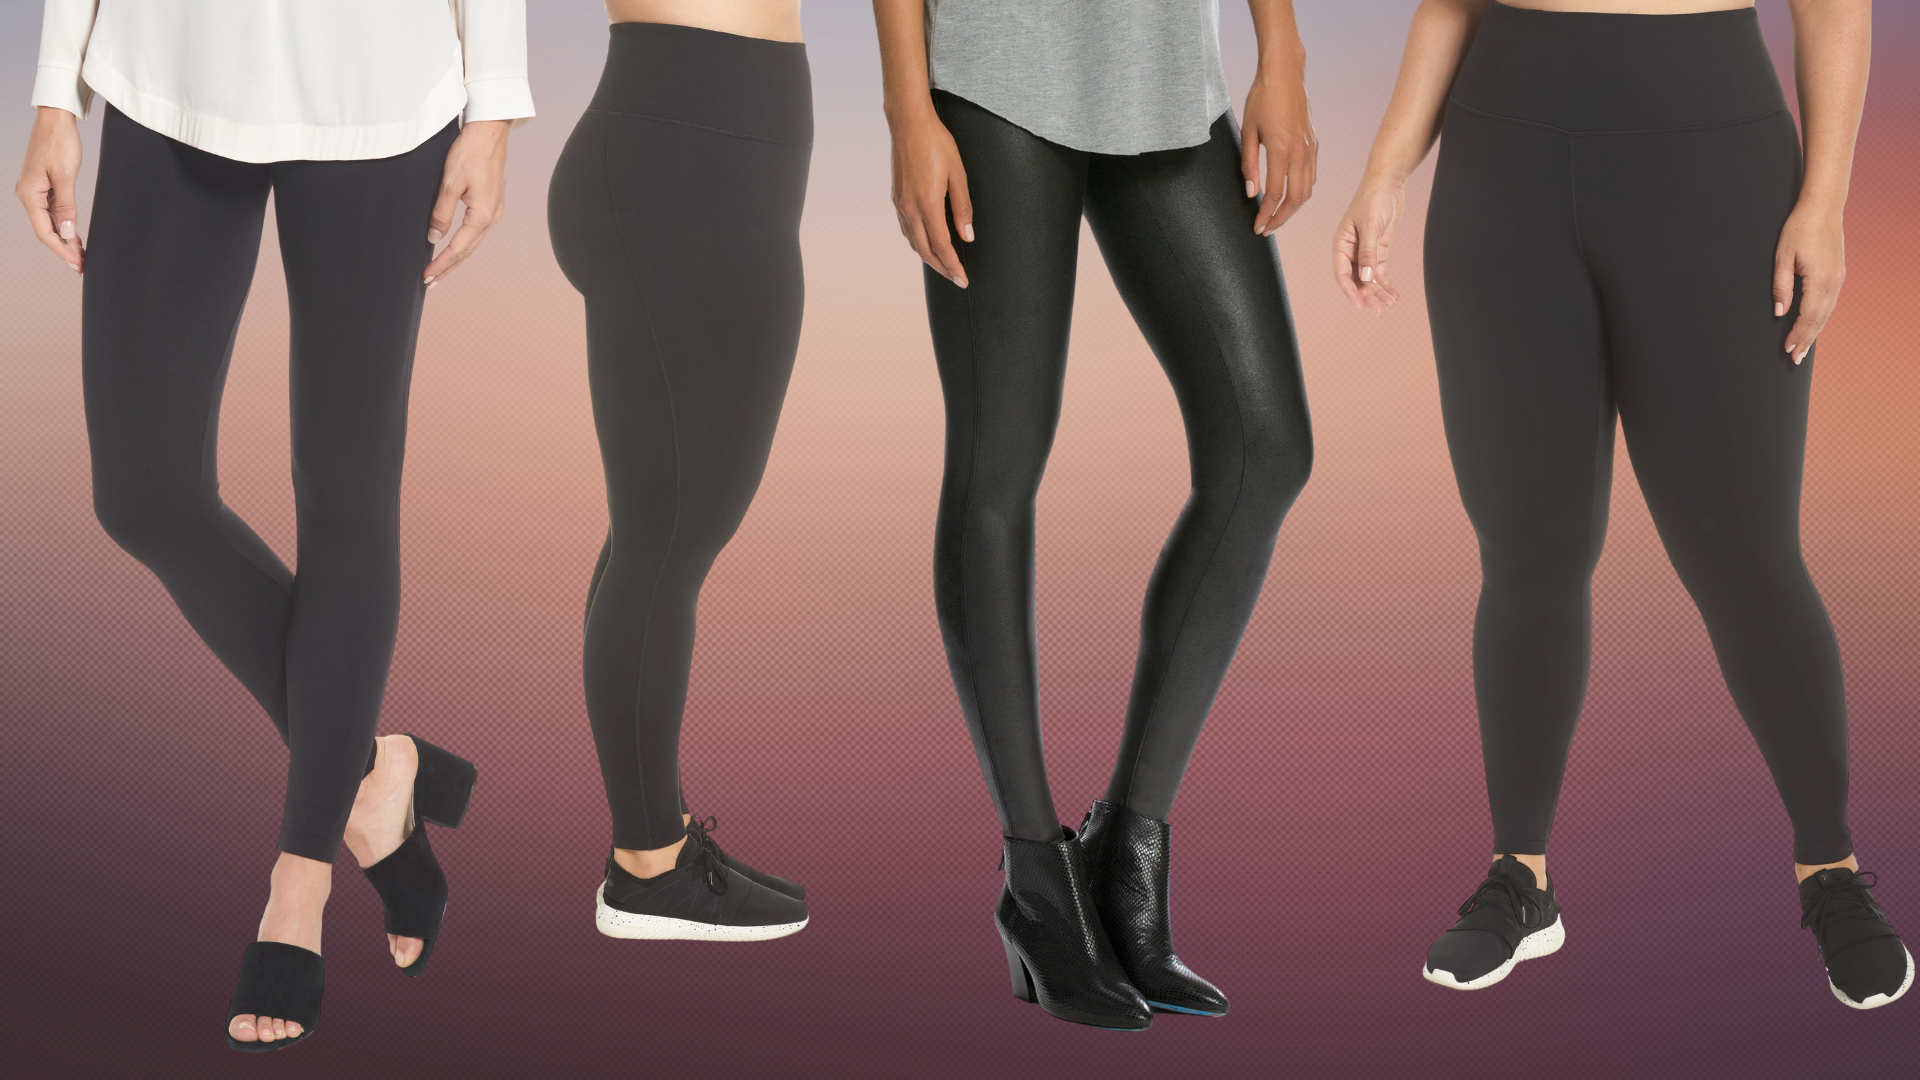 The 8 Best Leggings You Can Dress Up Or Down That Flatter Every Figure